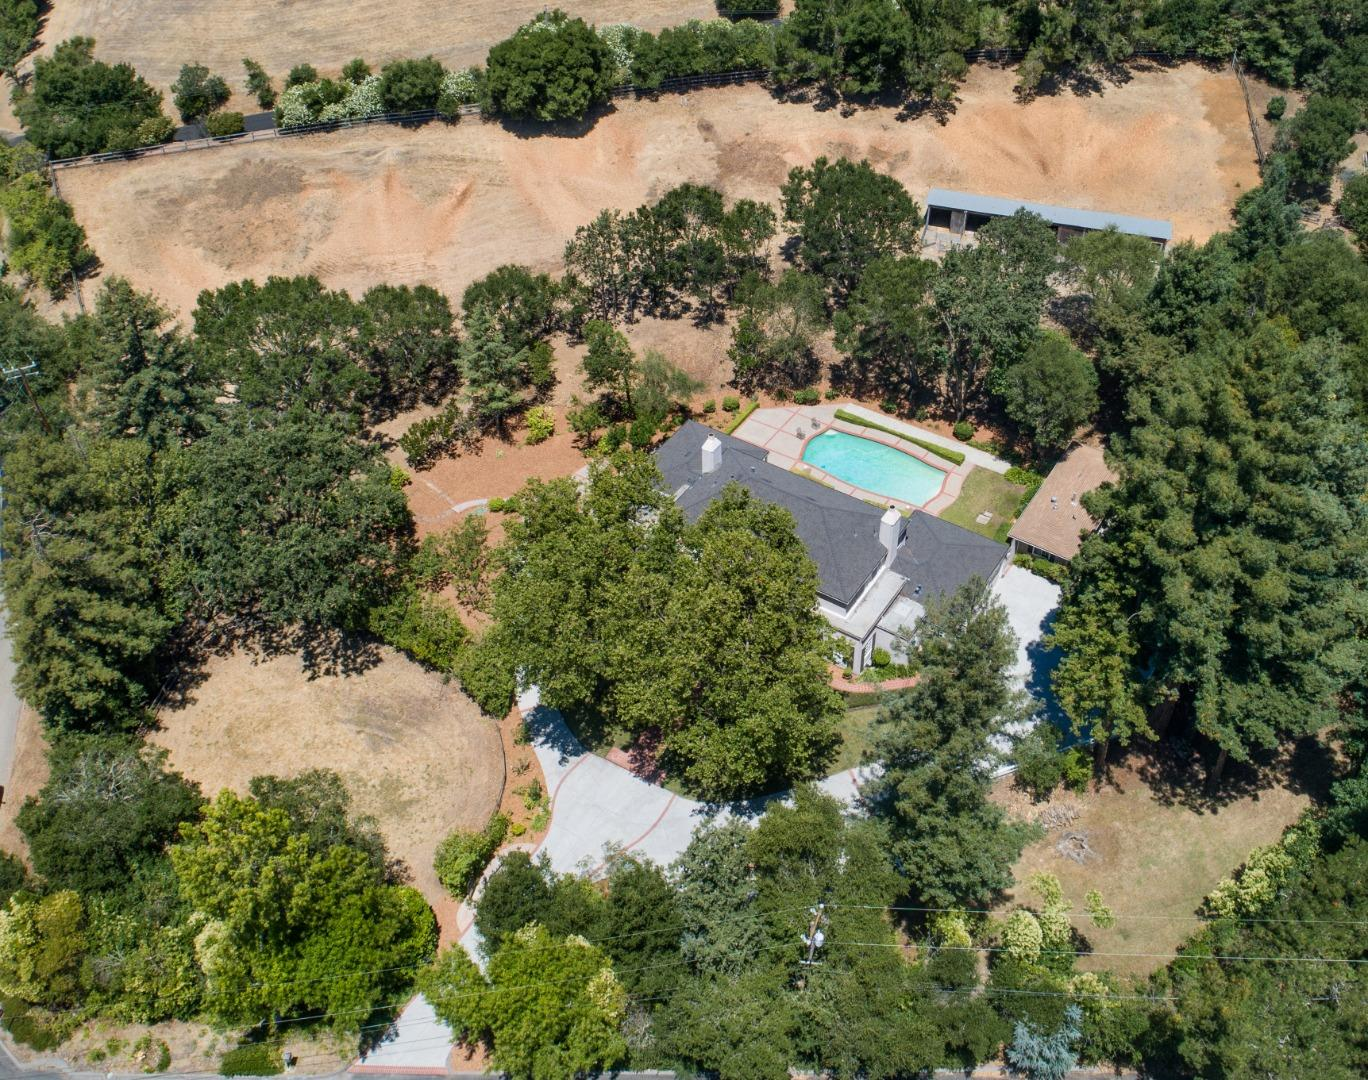 5 ZAPATA WAY, PORTOLA VALLEY, CA 94028